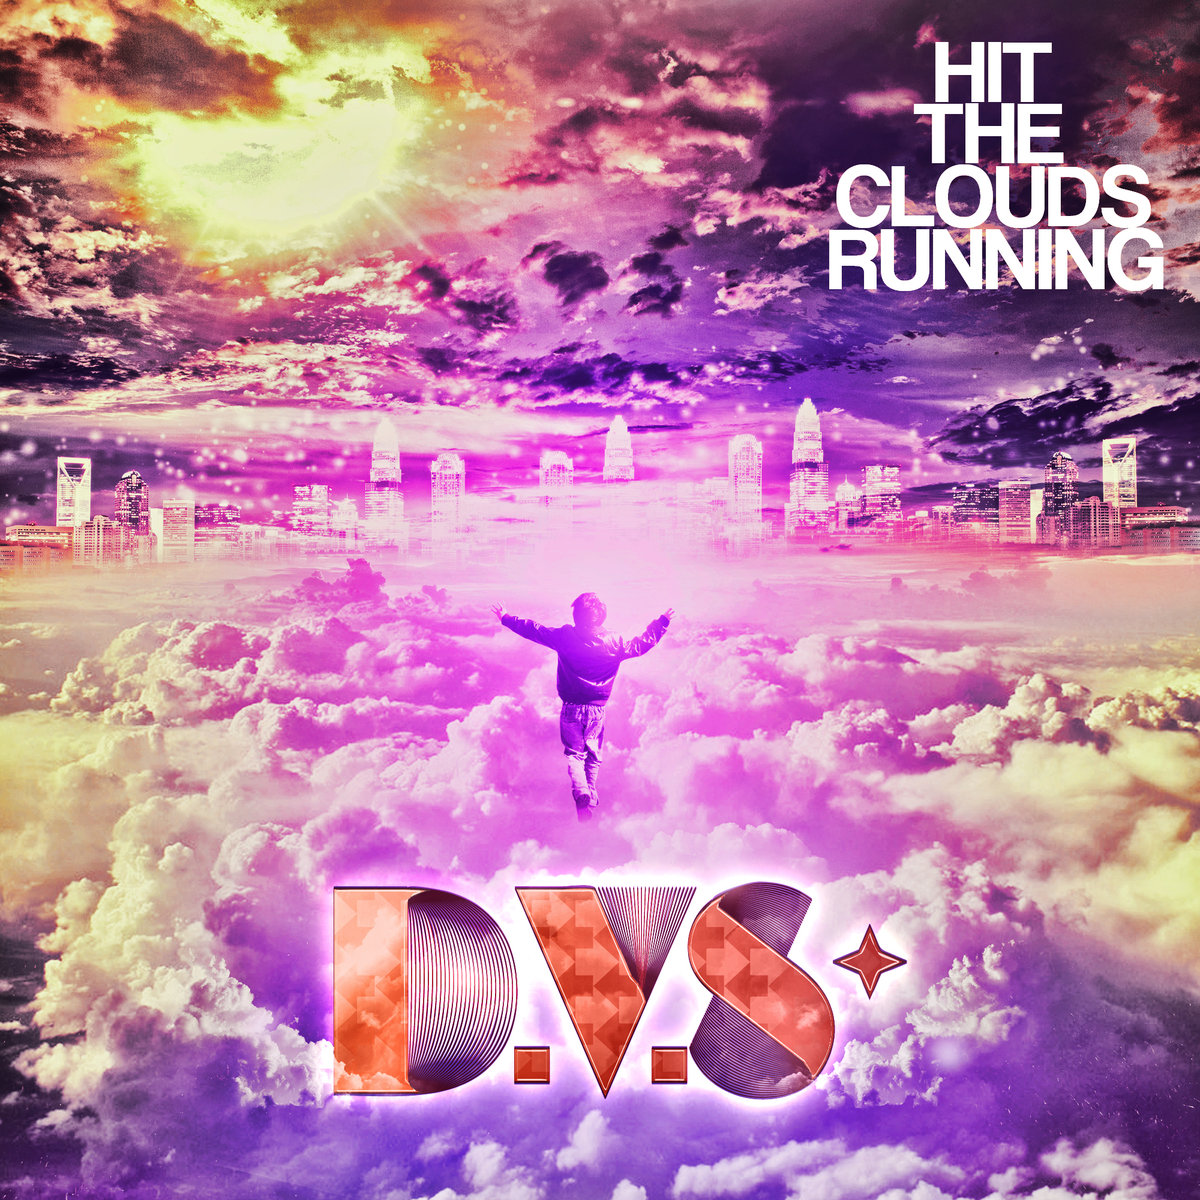 D.V.S* feat. Supersillyus - The Emblem @ 'Hit The Clouds Running' album (electronica, guitar)